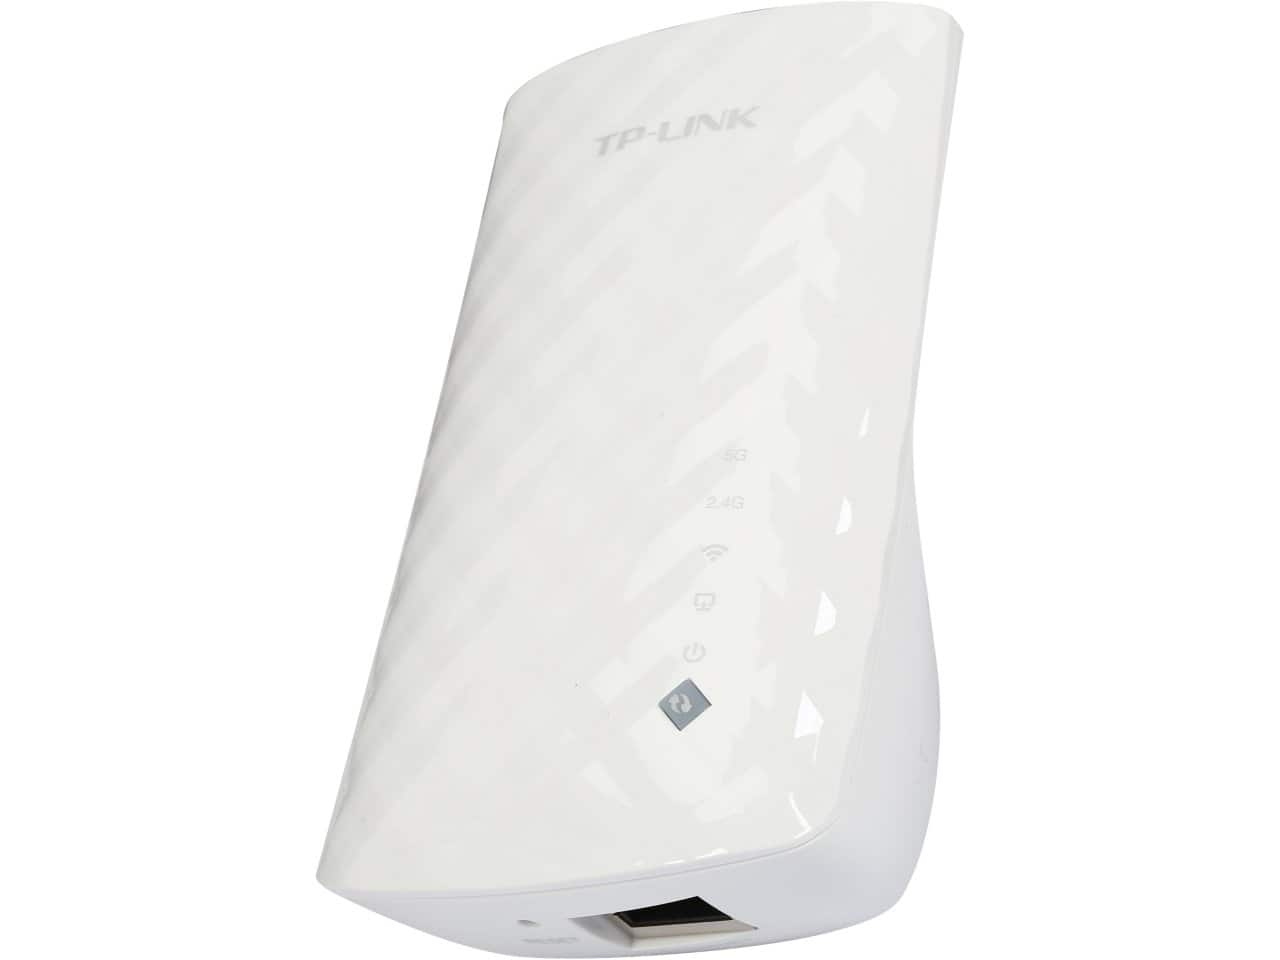 TP-LINK RE200 AC750 Wireless Dual-Band Range Extender for $24.99 AC, Asus PCE-AC55BT AC1200 + Bluetooth 4.0 PCI-E Wireless Adapter for $29.99 AC & More @ Newegg.com